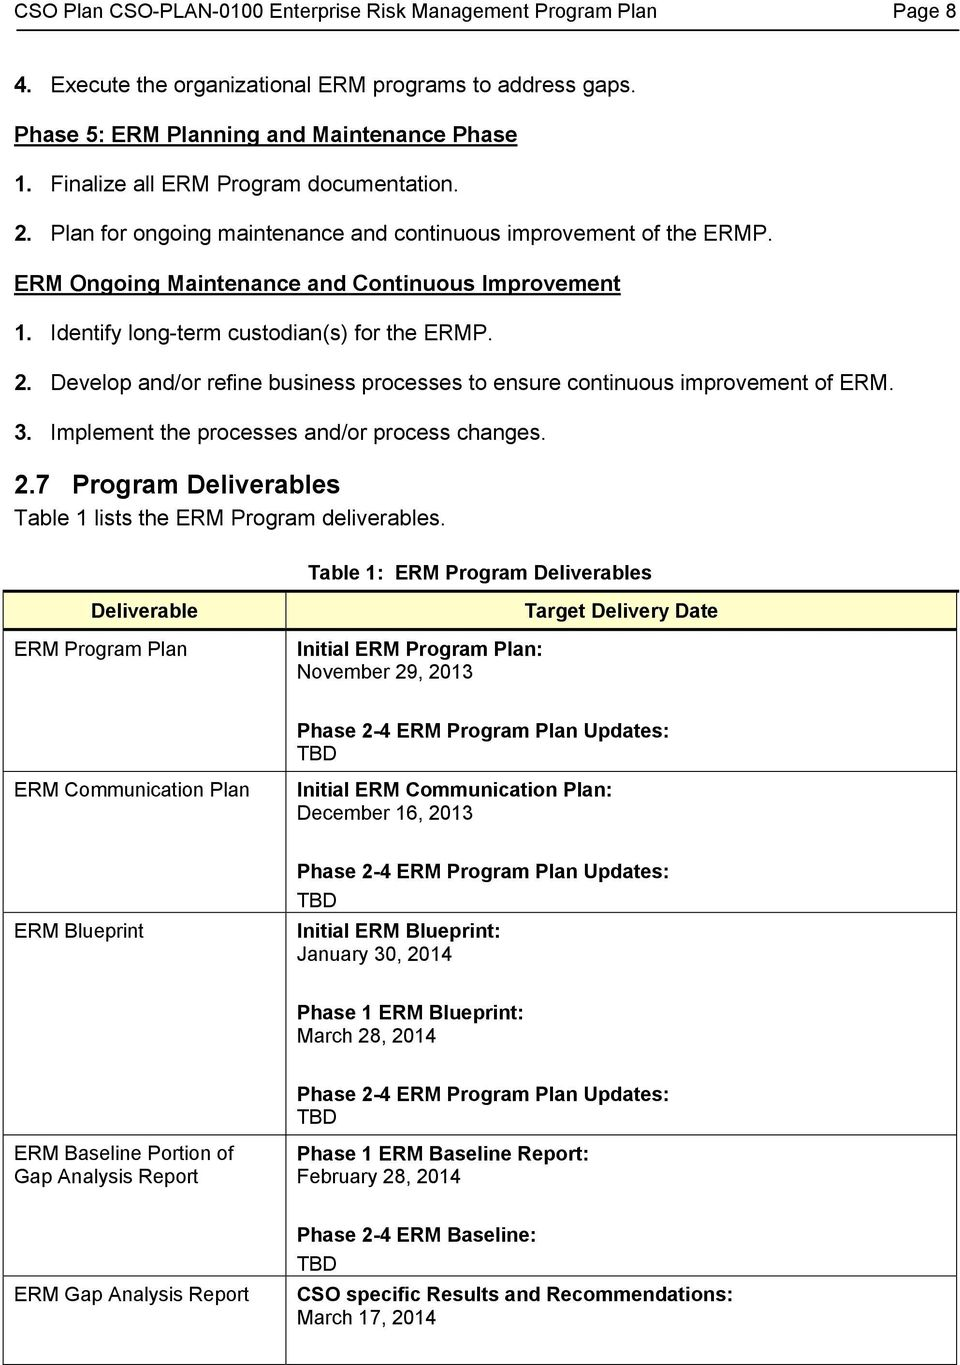 Identify long-term custodian(s) for the ERMP. 2. Develop and/or refine business processes to ensure continuous improvement of ERM. 3. Implement the processes and/or process changes. 2.7 Program Deliverables Table 1 lists the ERM Program deliverables.